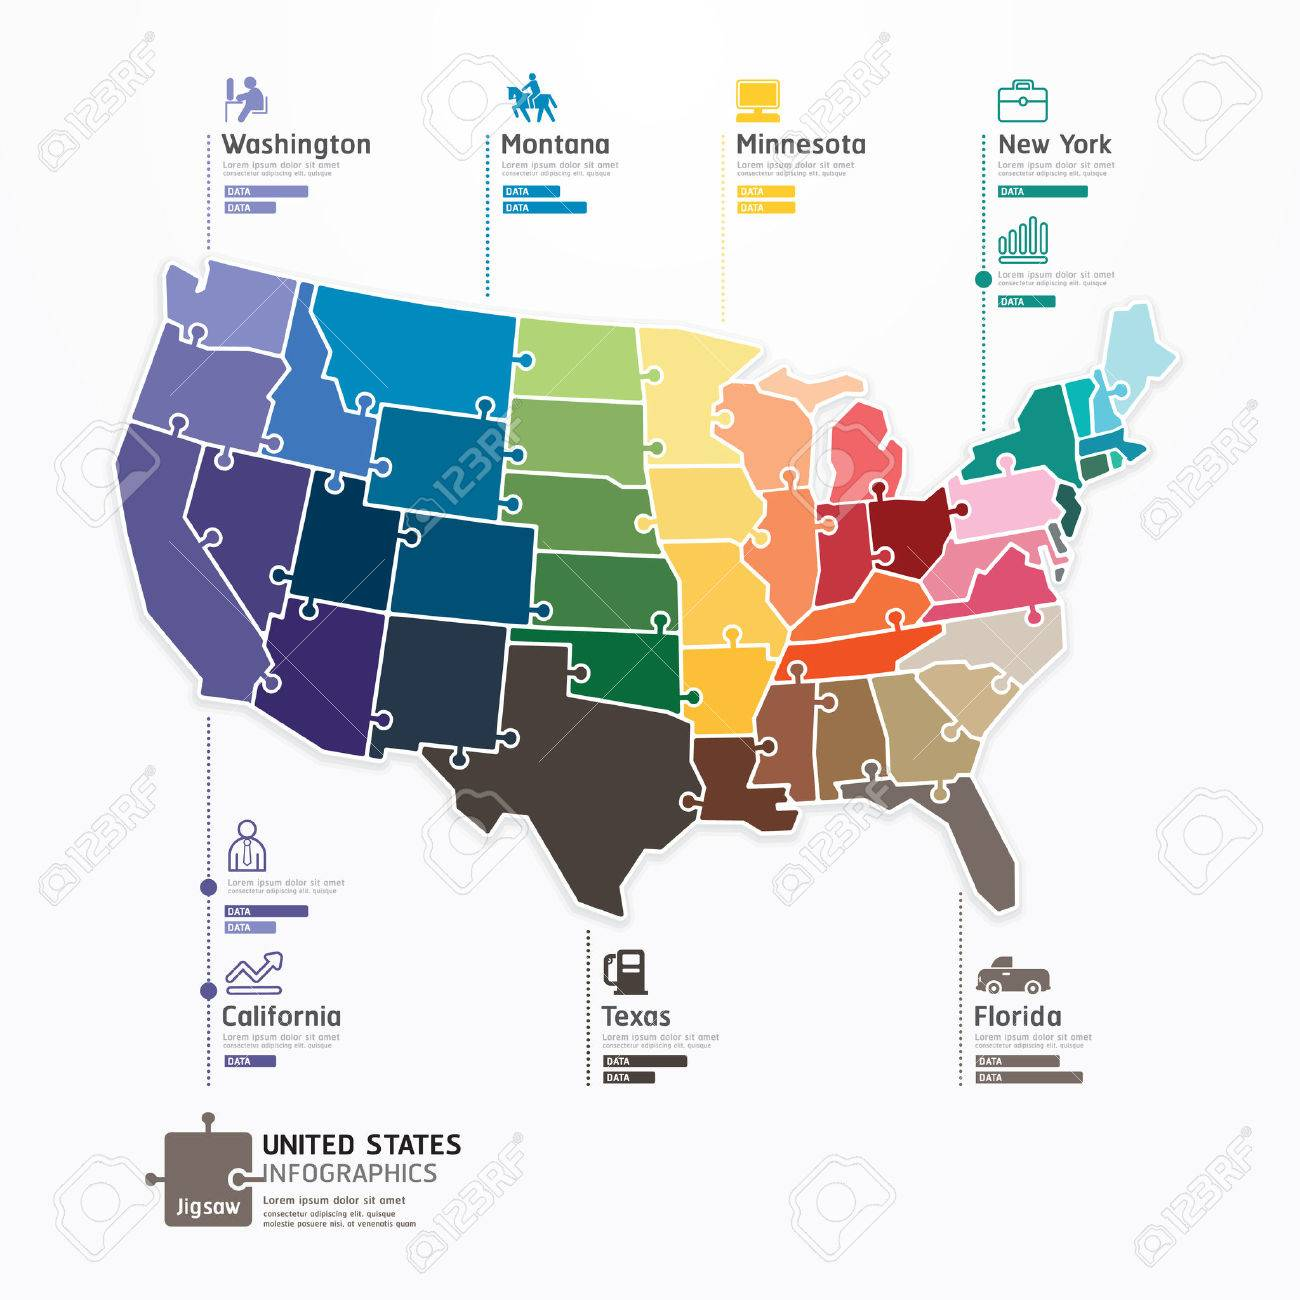 United states Map Infographic Template jigsaw concept banner vector illustration - 26582250